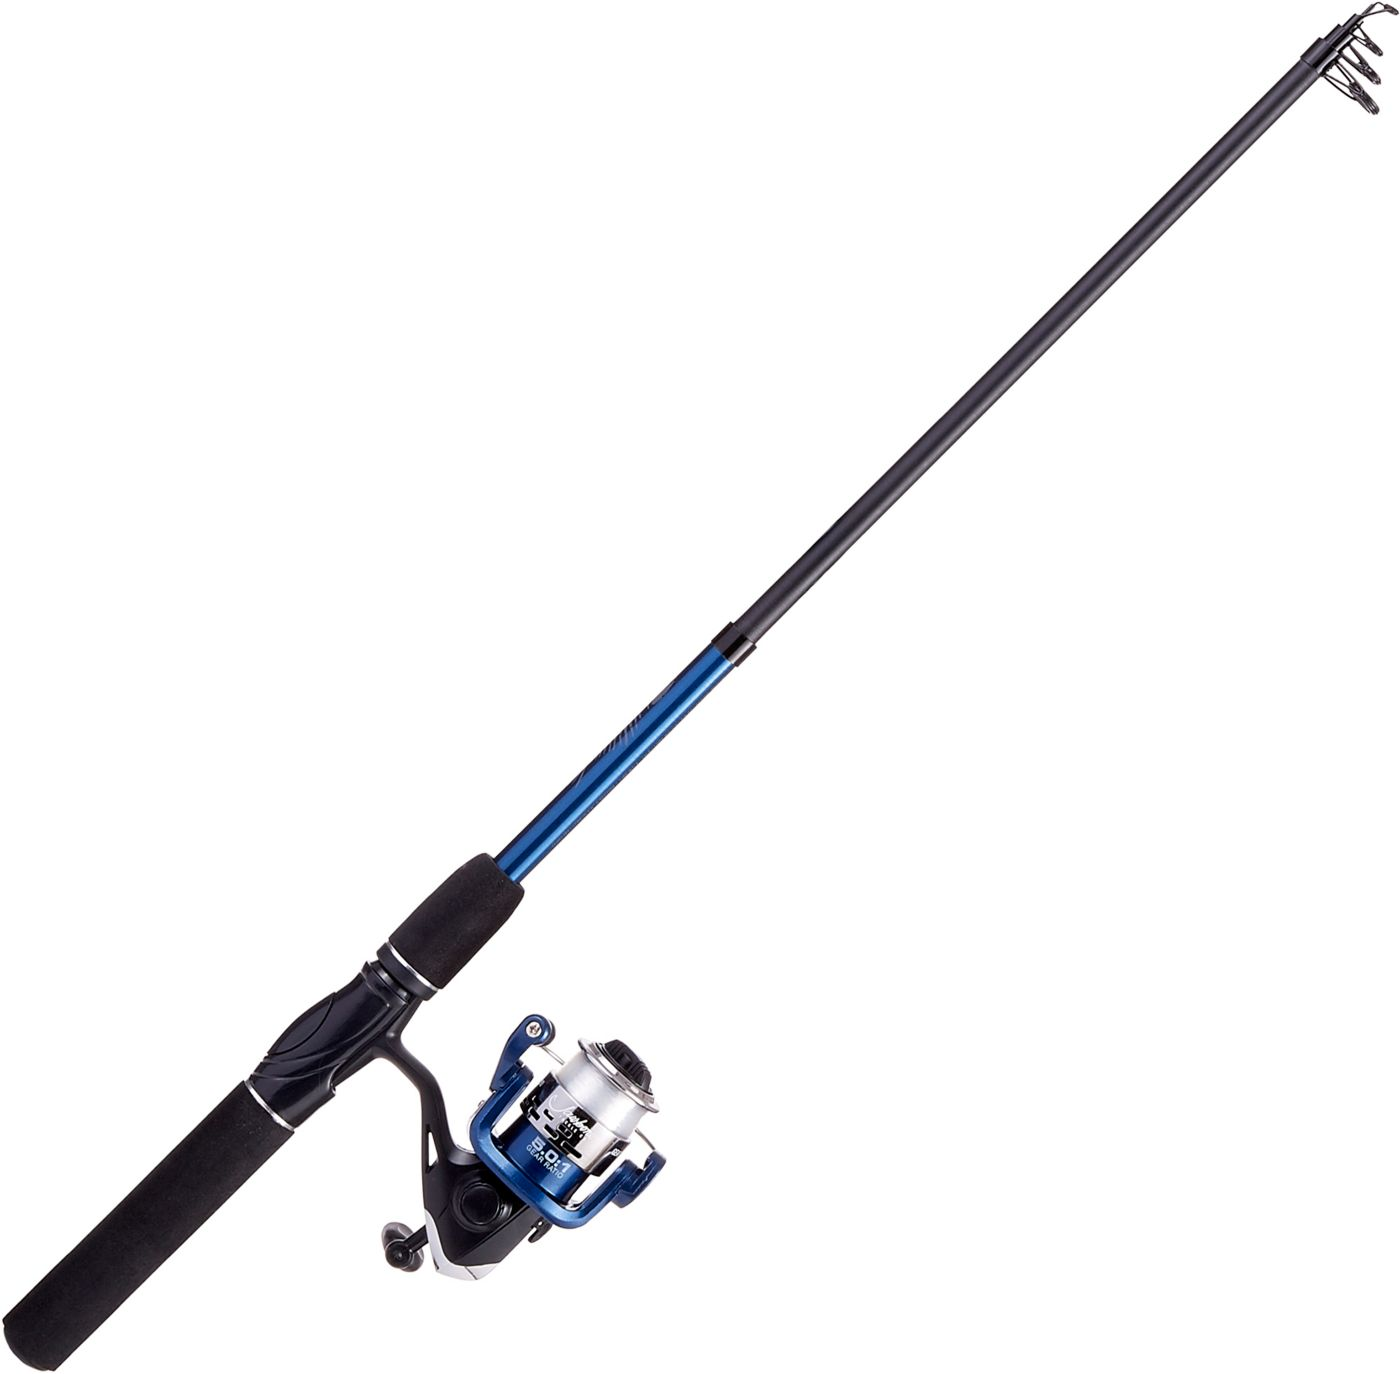 Jawbone Telescopic Spinning Combo